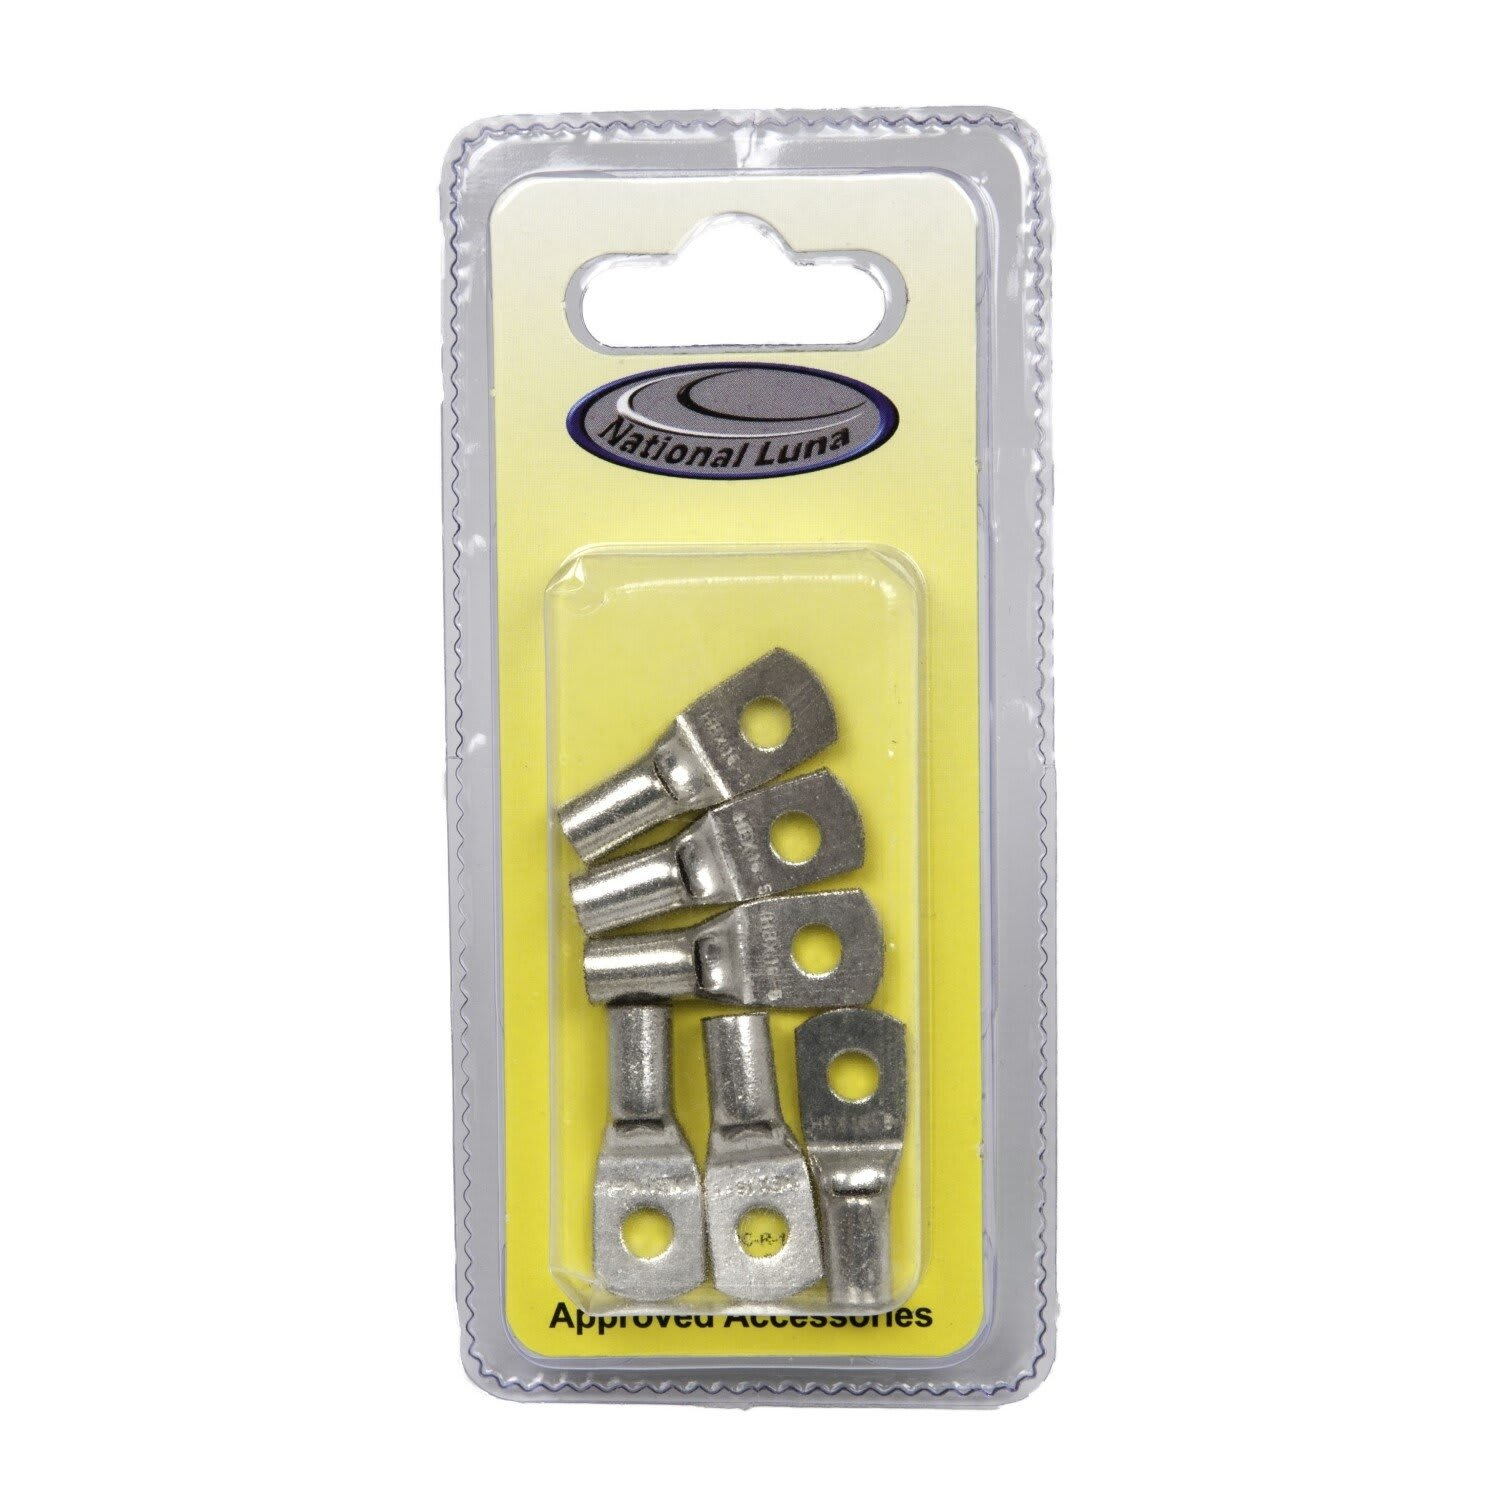 National Luna Cable Lugs 16x10 (6pack)